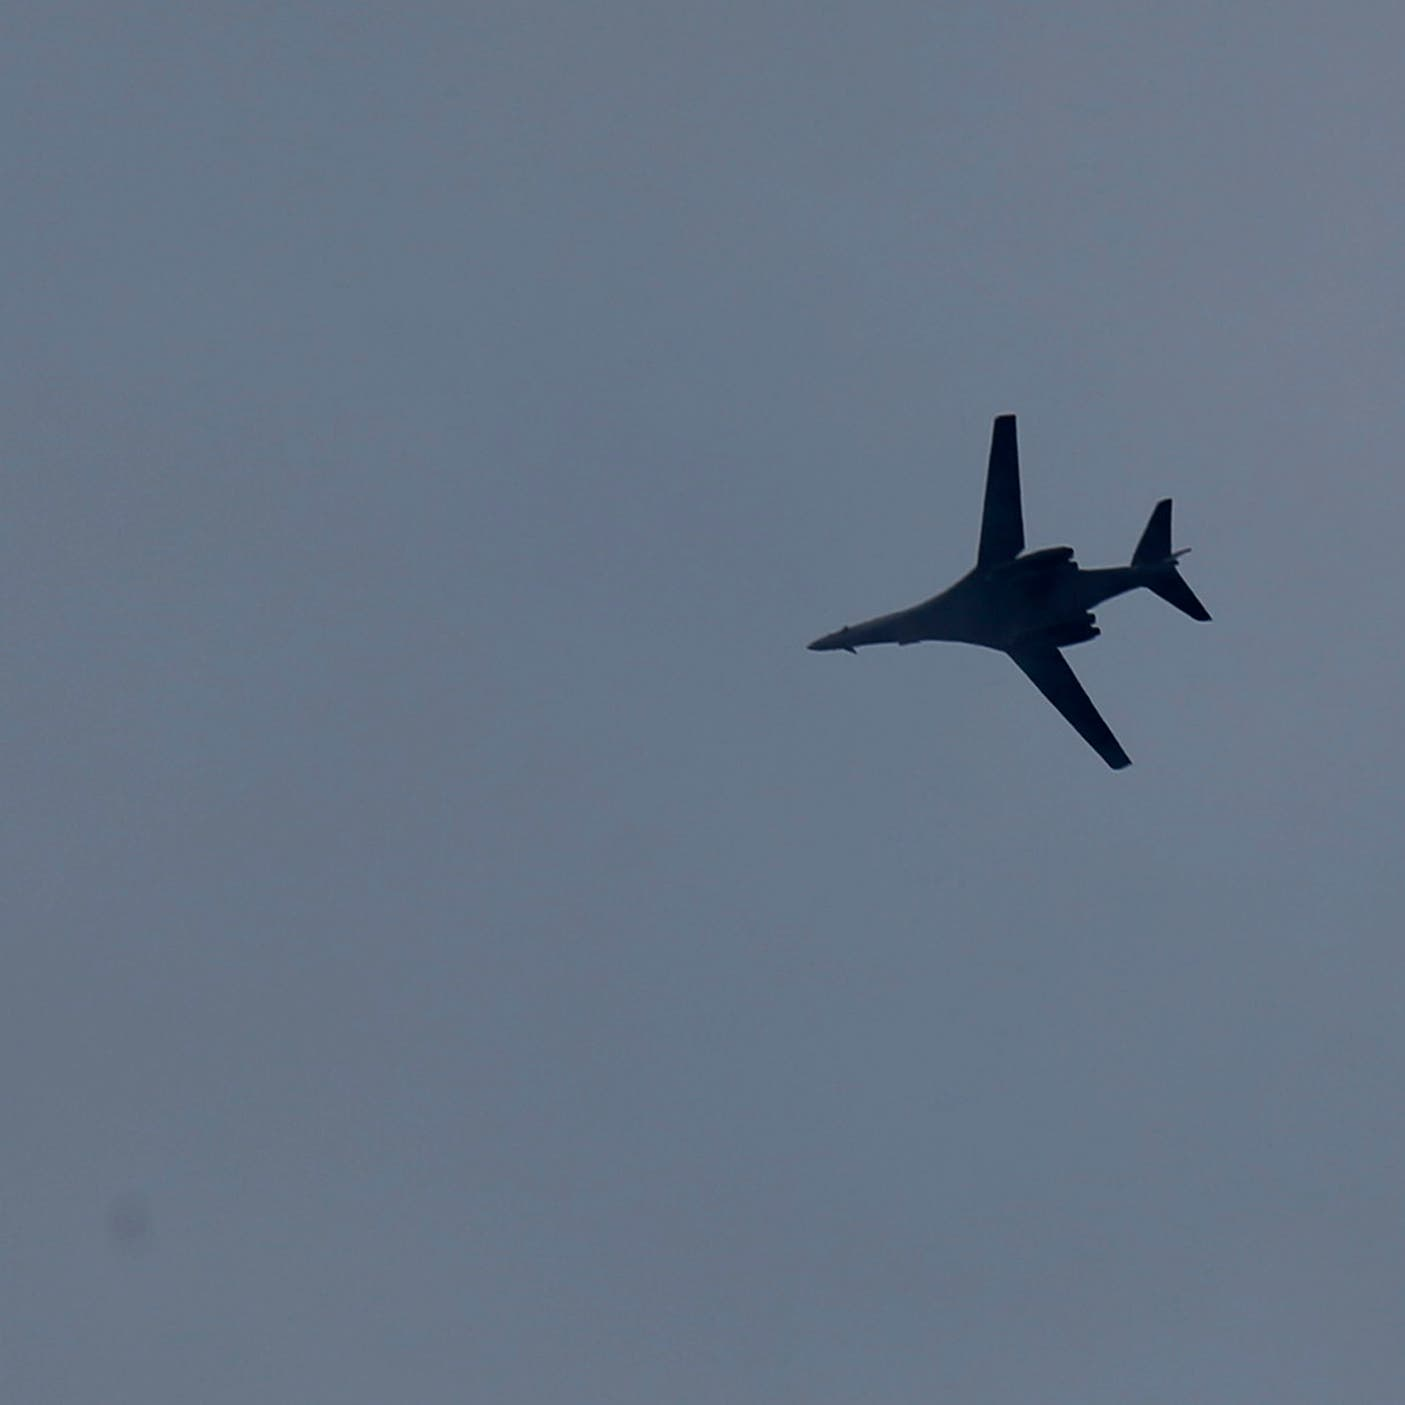 US-led coalition fighter jet shoots down drone over Syria